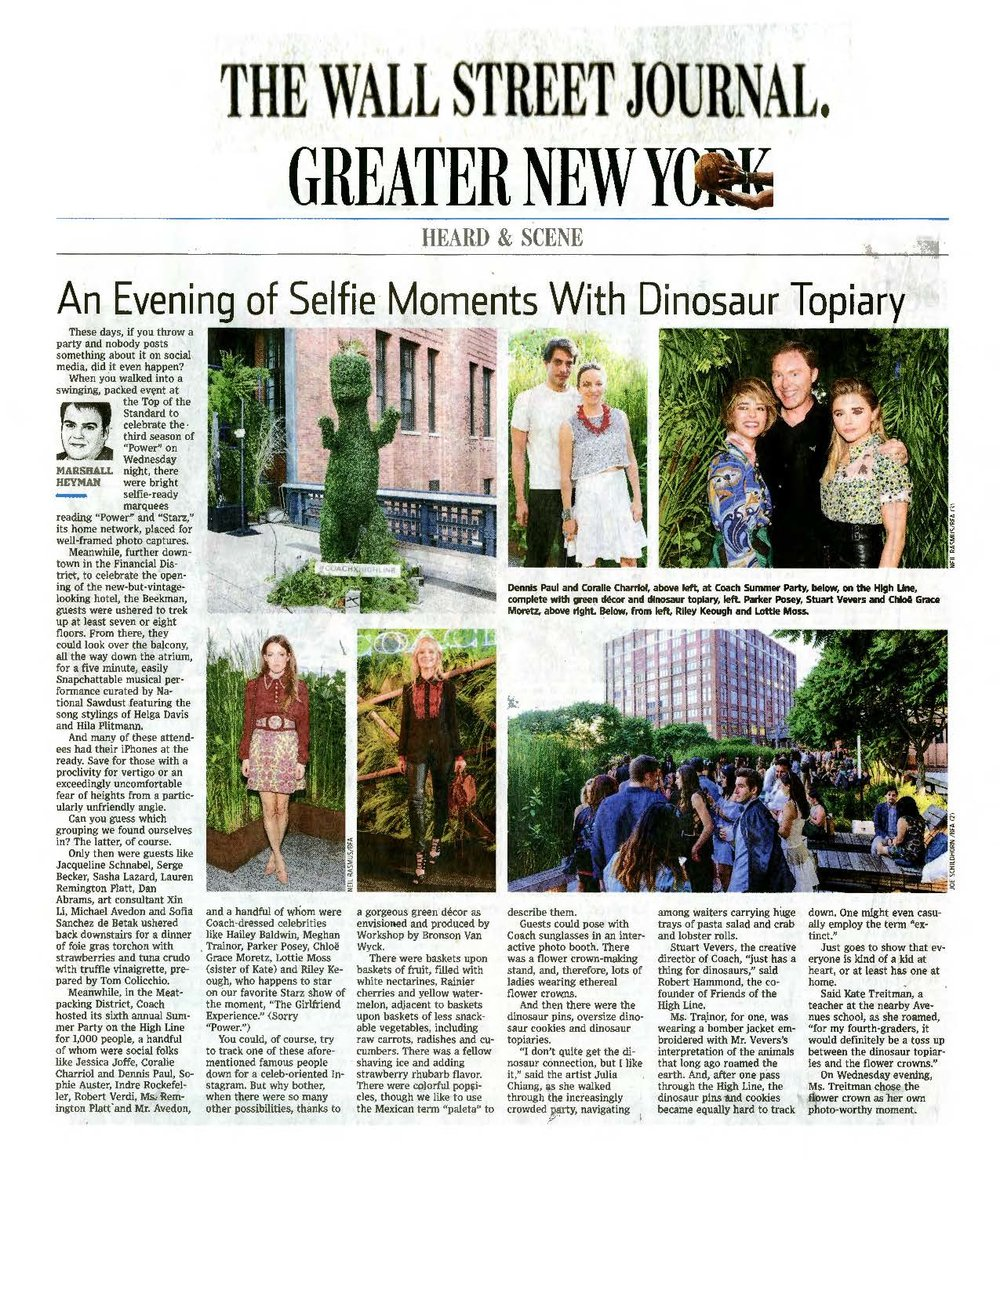 Wall Street Journal - Coach High Line - 6.24.16.jpg